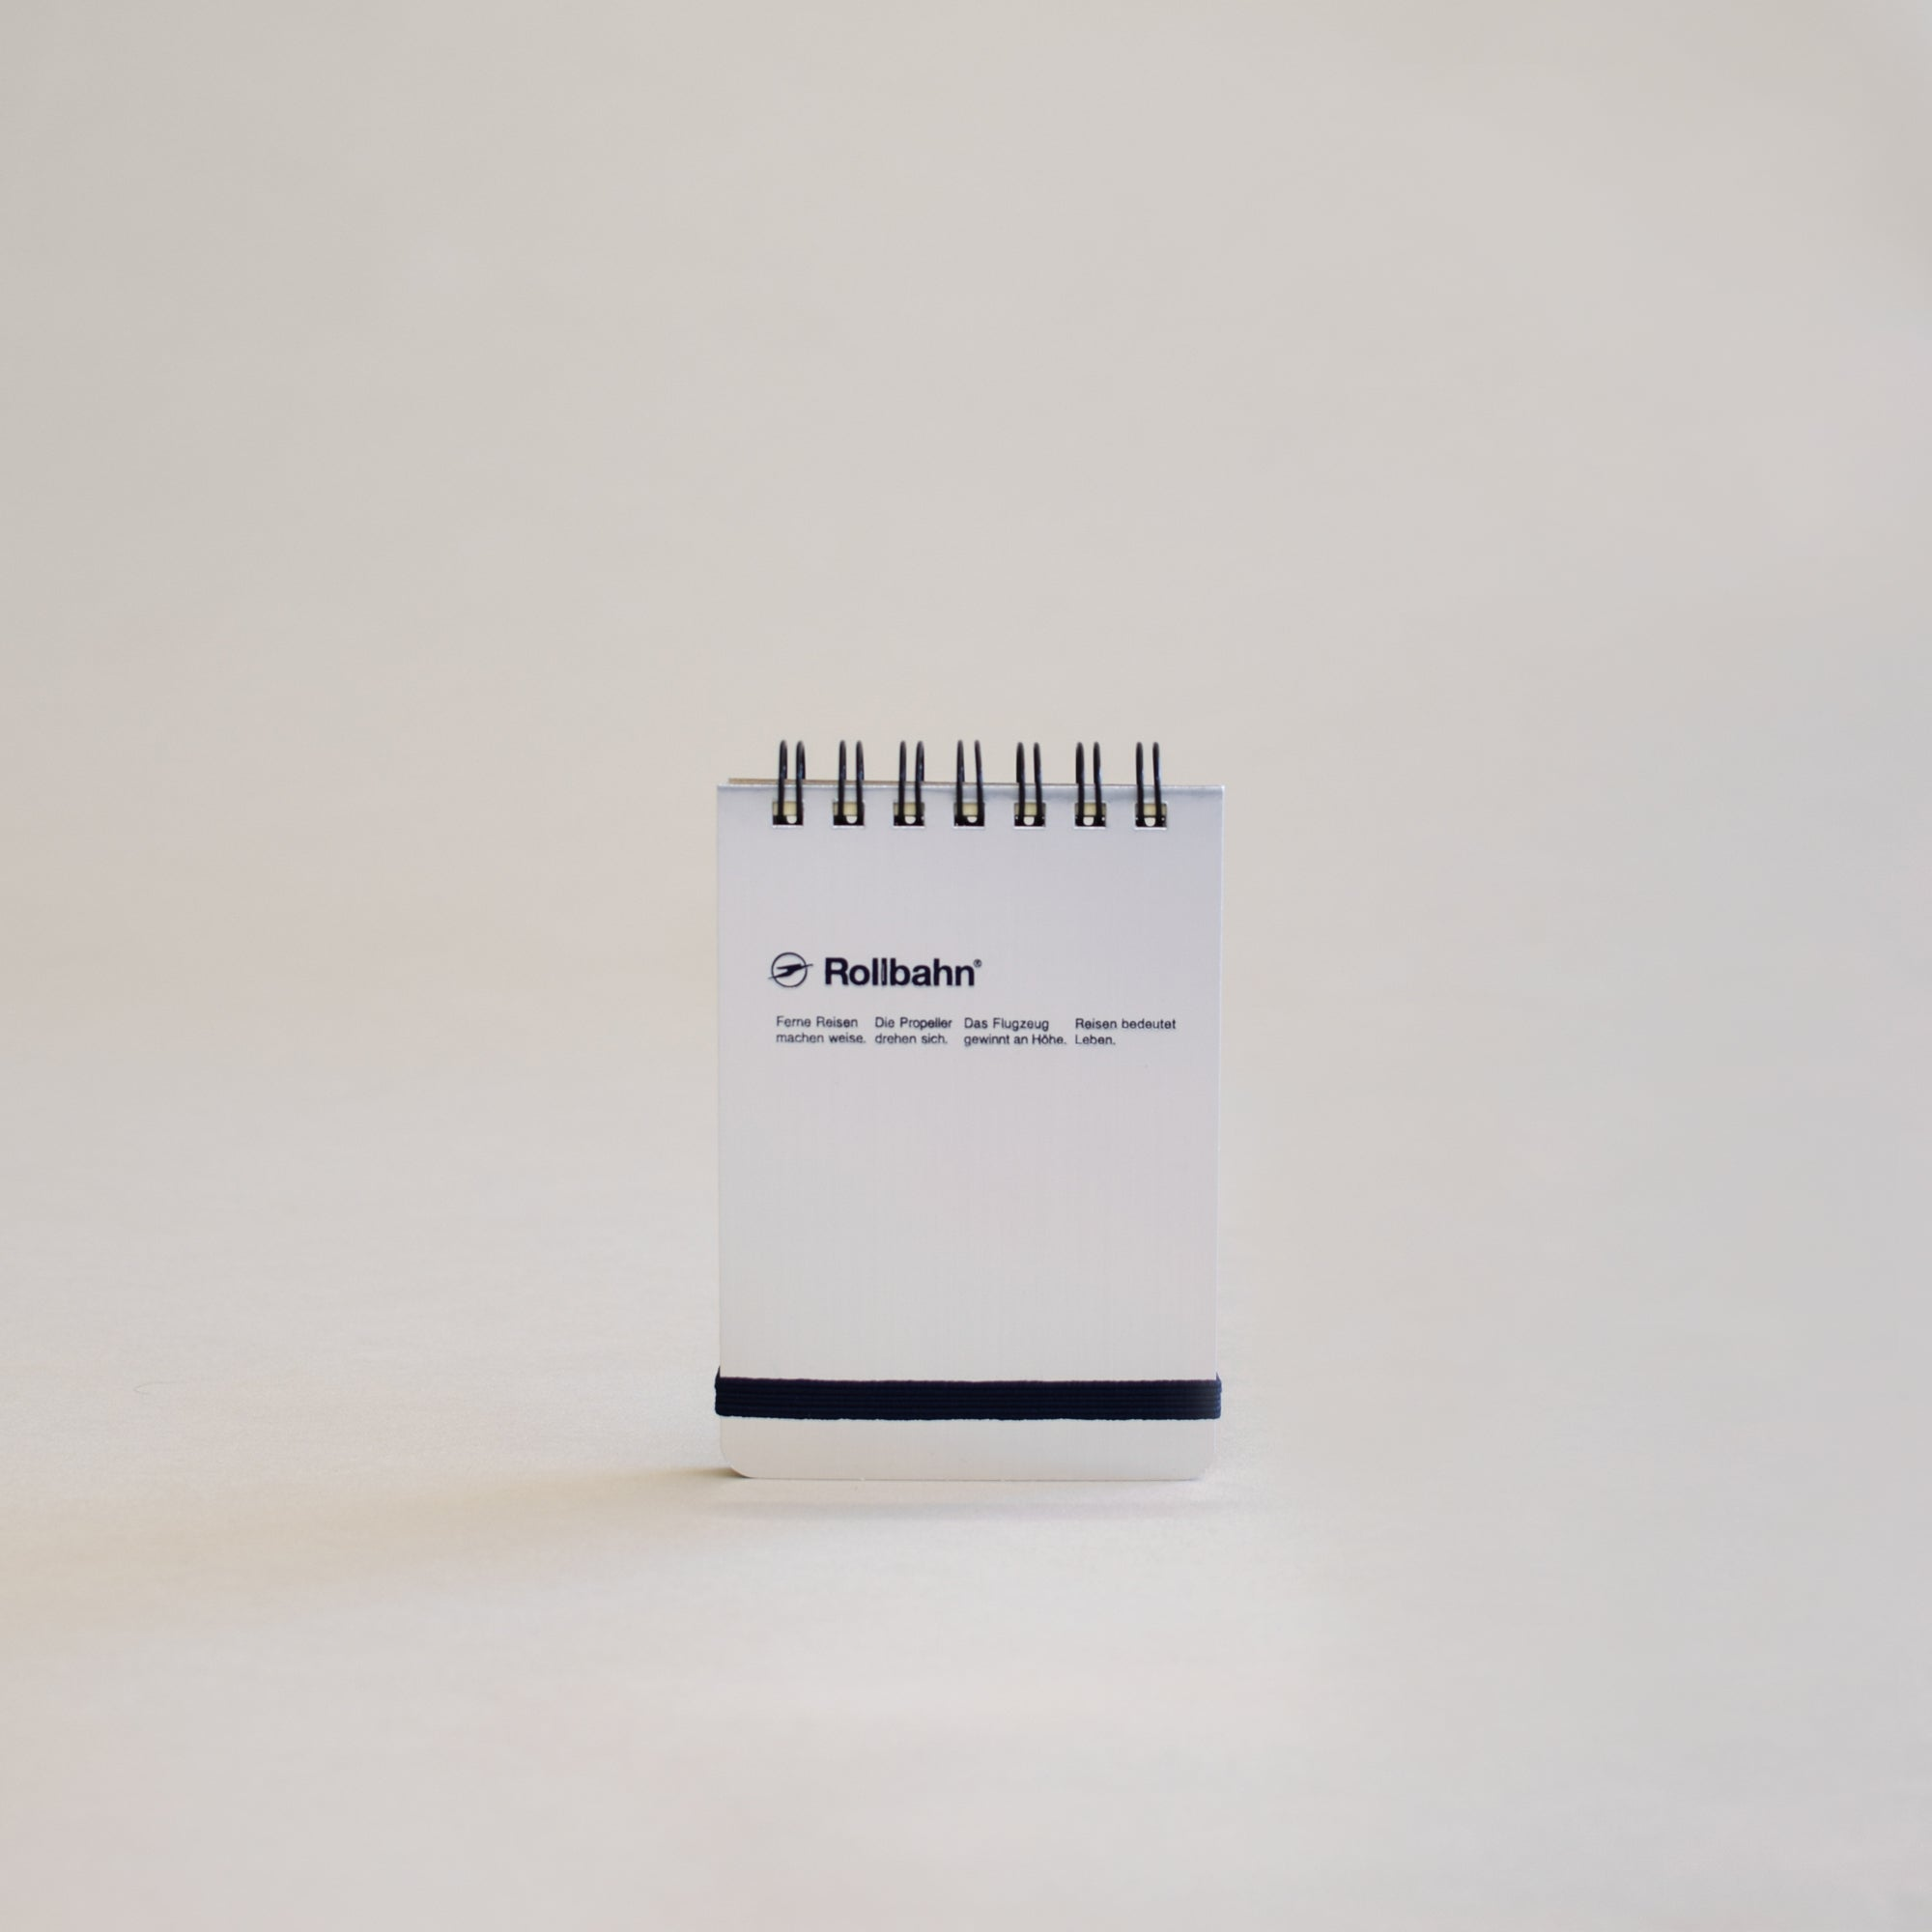 The Rollbahn Spiral Notebook Mini Flip Memo from Delfonics in shiny silver.